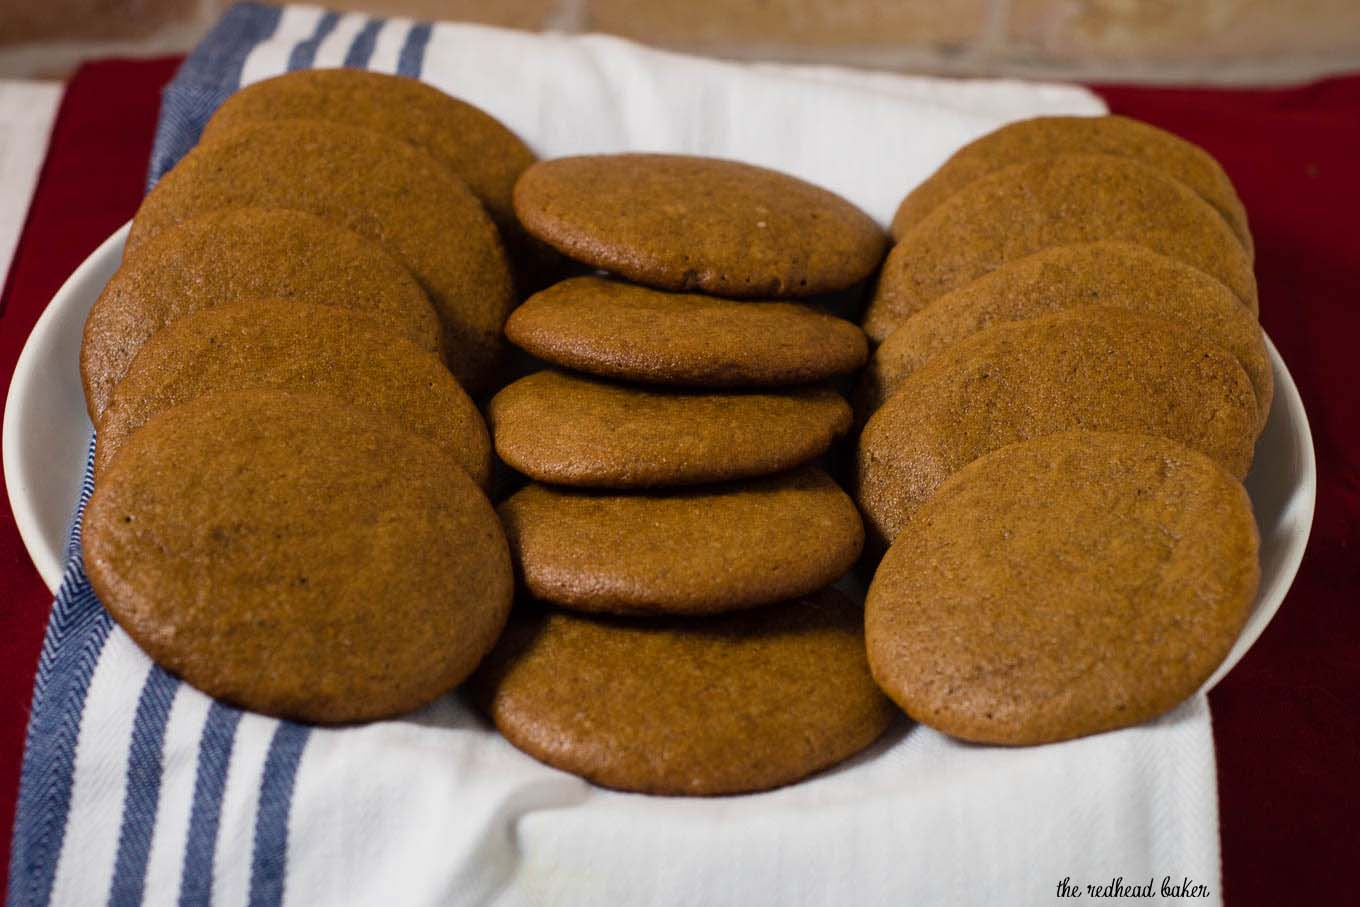 Pepparkakor are Swedish ginger cookies traditionally served at Christmas time. They are less sweet and have a slightly more complex flavor. #ChristmasCookies #InternationalCookies